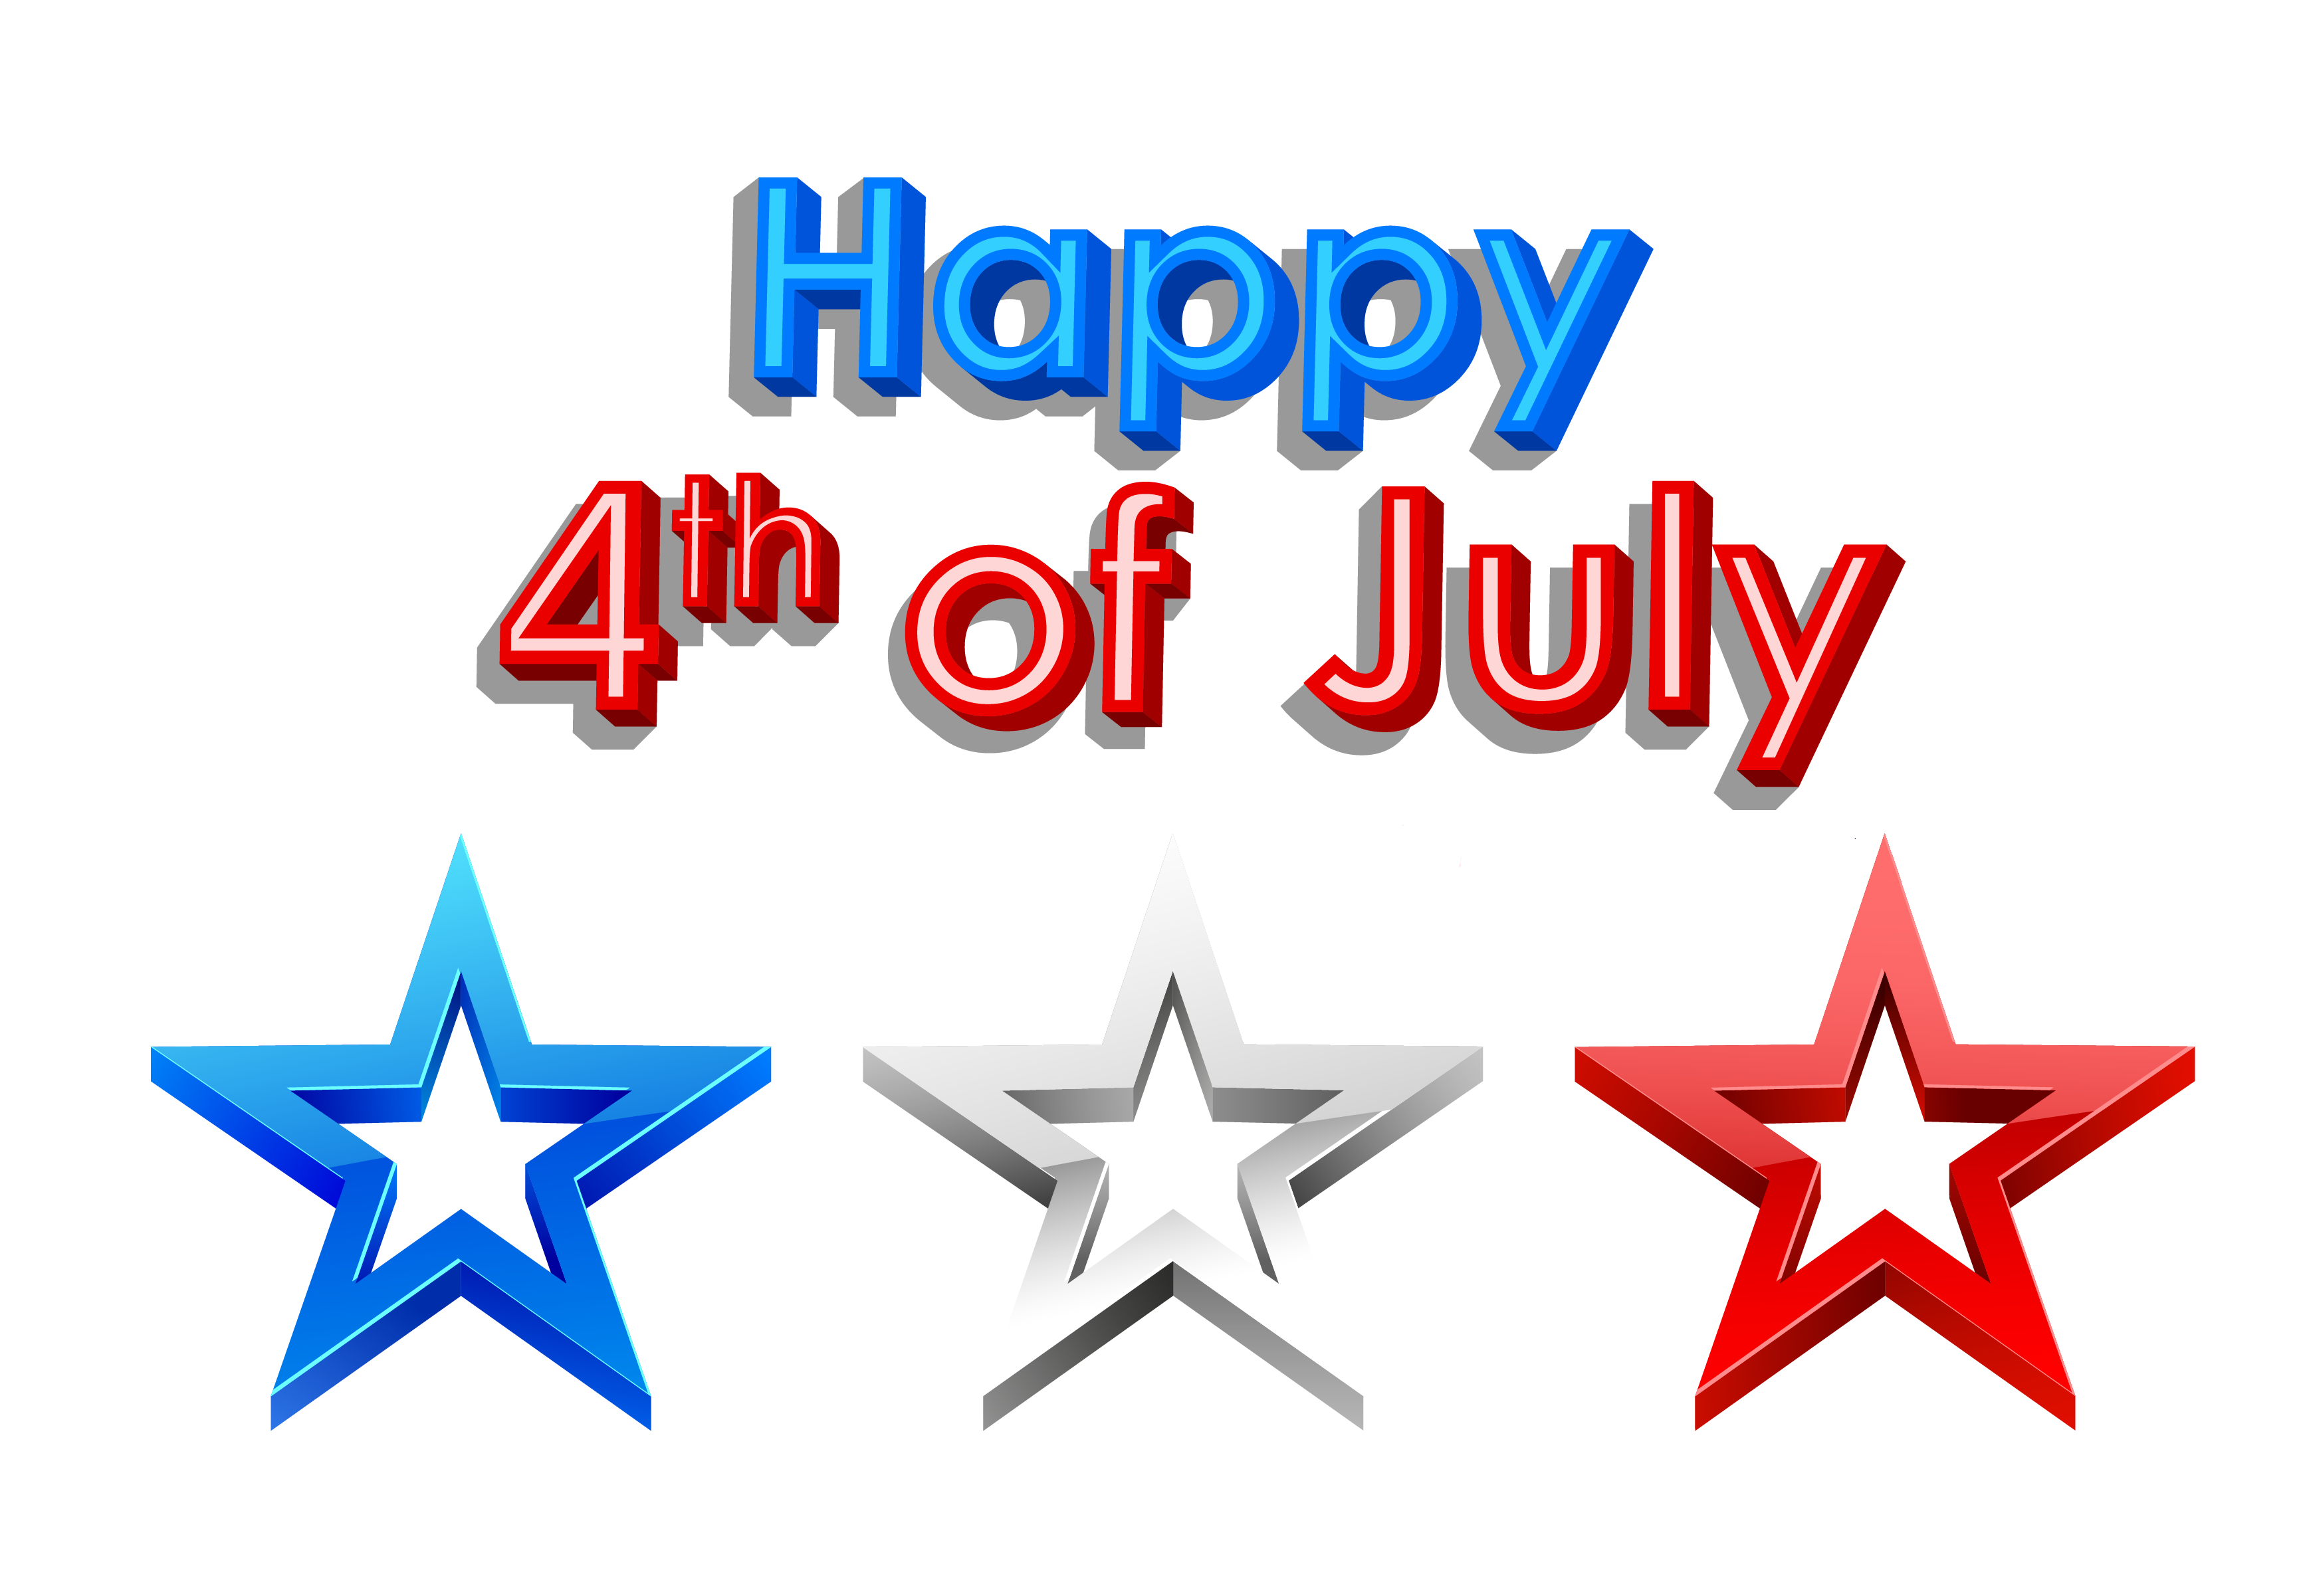 July 4 clipart vector library library Happy 4th Of July Parades, Cliparts And Decorations - 4th of July ... vector library library